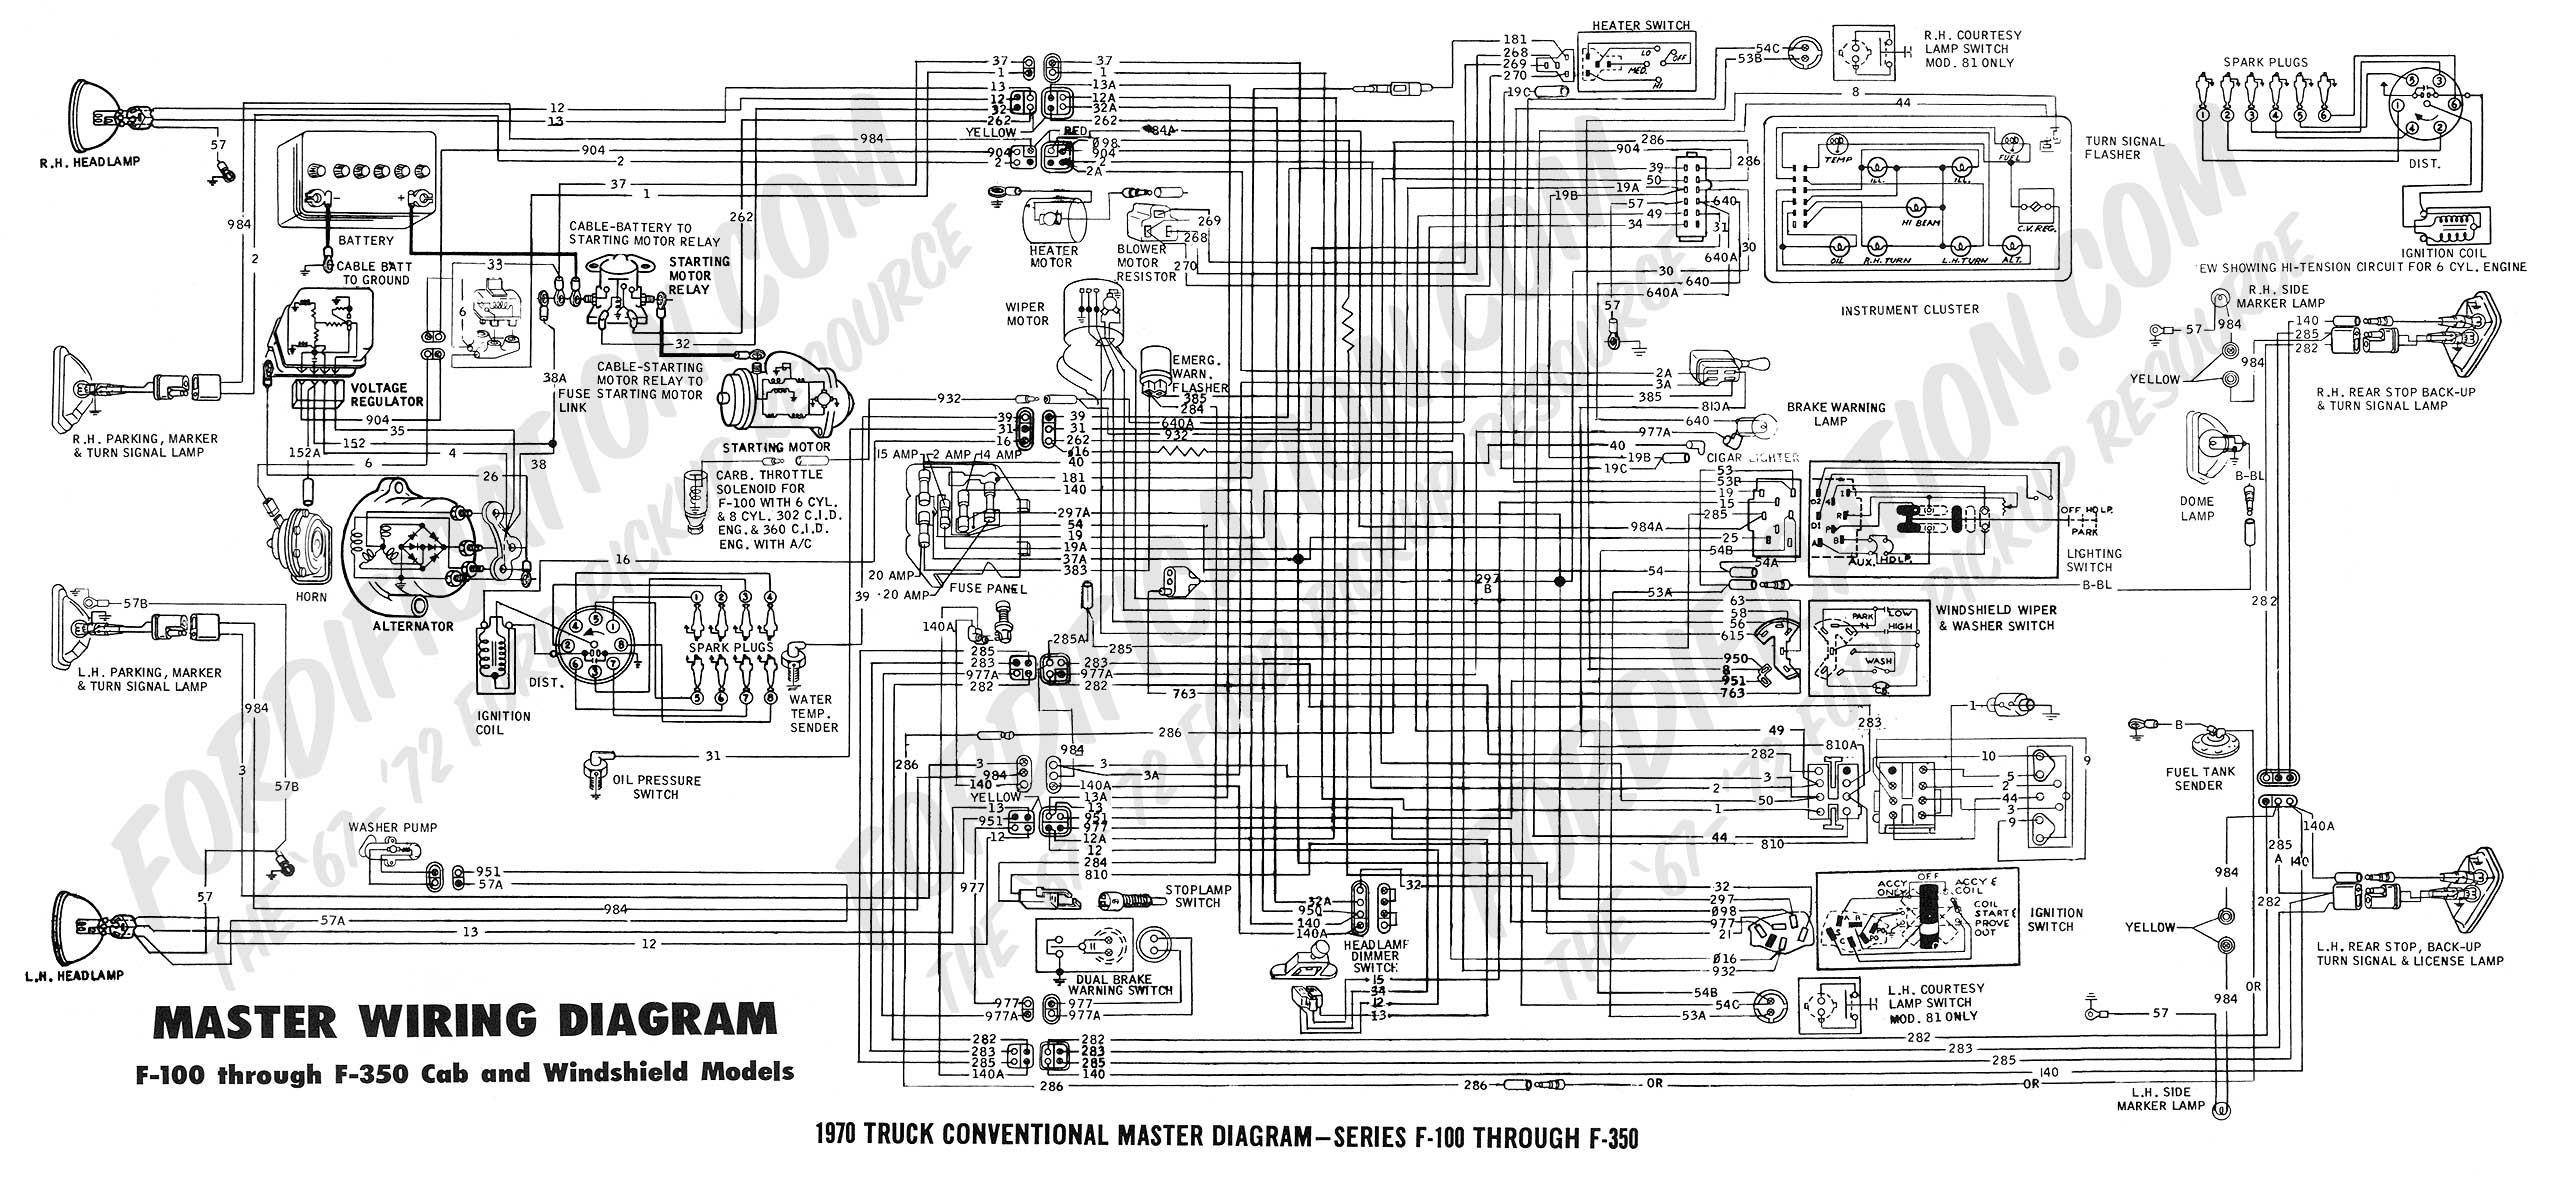 wiring diagram 70_master ford truck technical drawings and schematics section h wiring duramax 4x4 control wiring diagram at webbmarketing.co